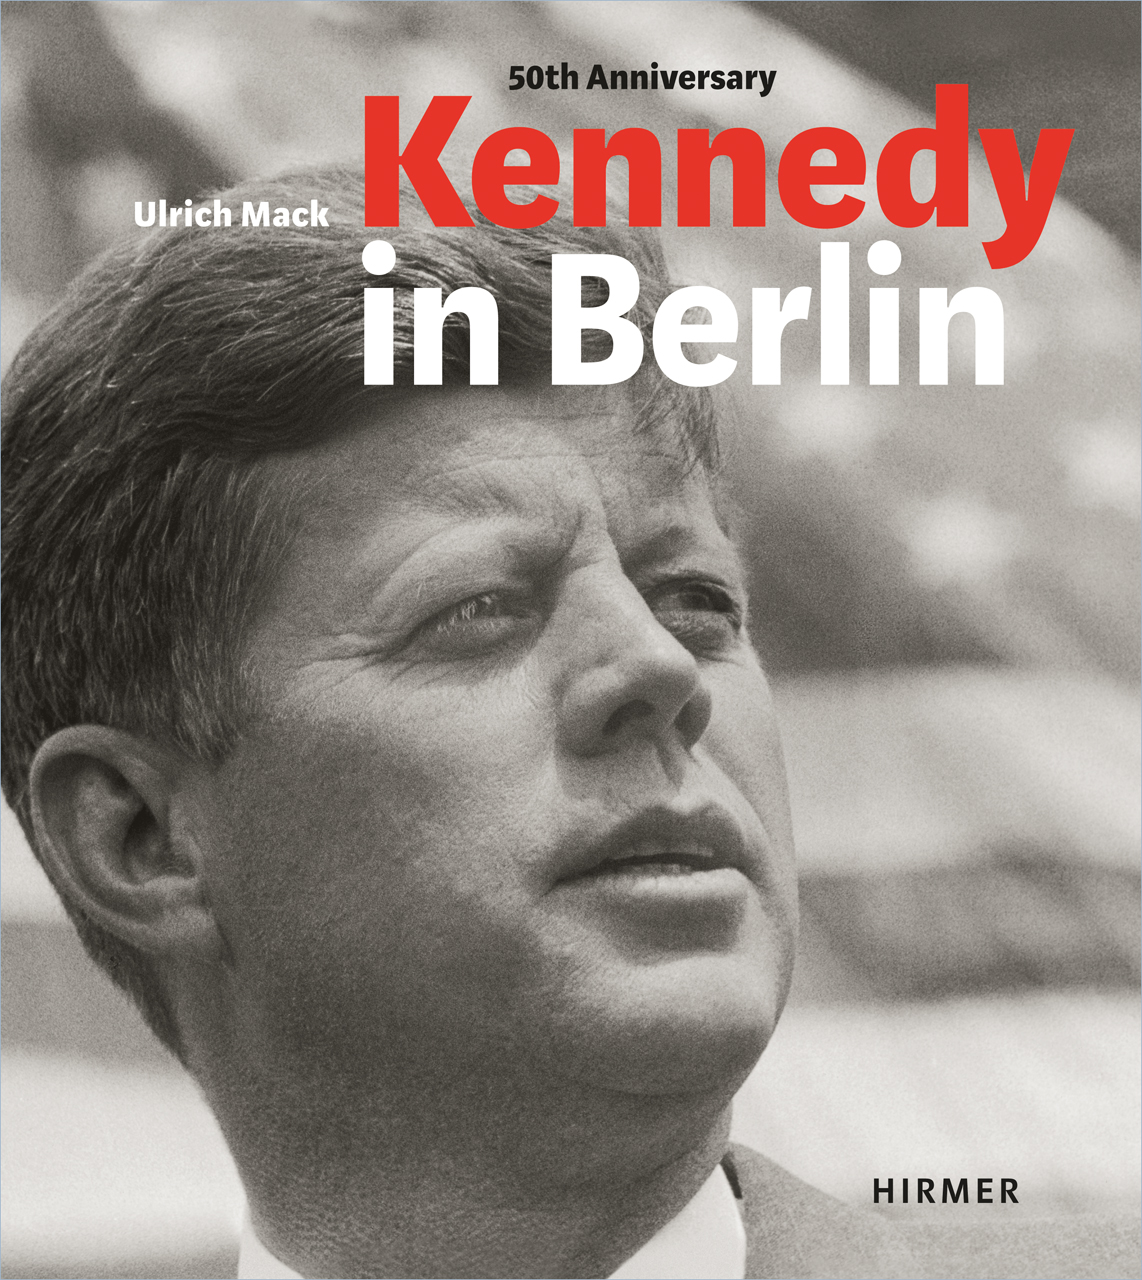 Kennedy in Berlin: Photographs by Ulrich Mack